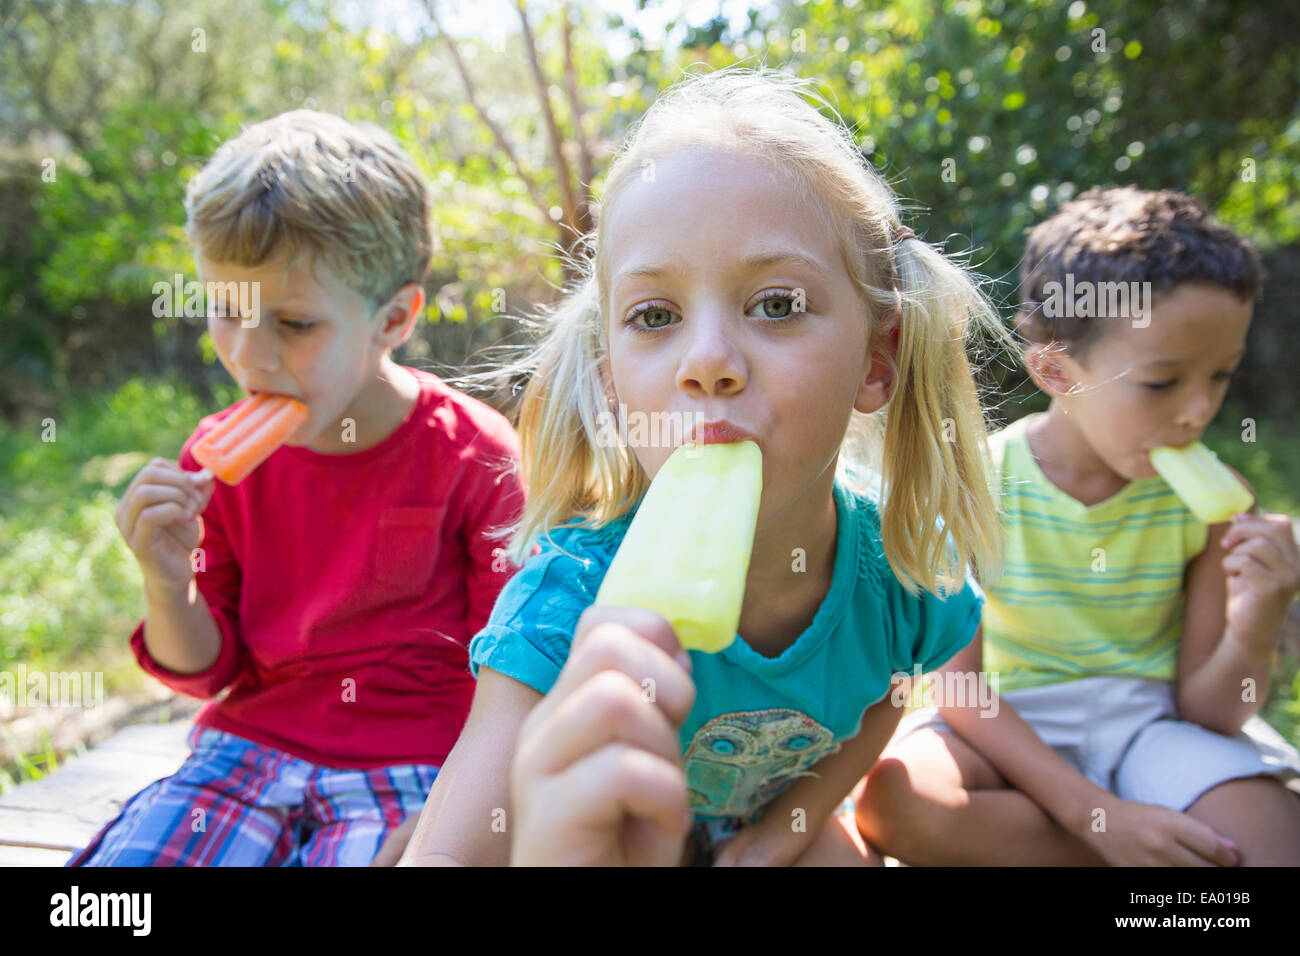 Portrait of three children in garden eating ice lollies Stock Photo